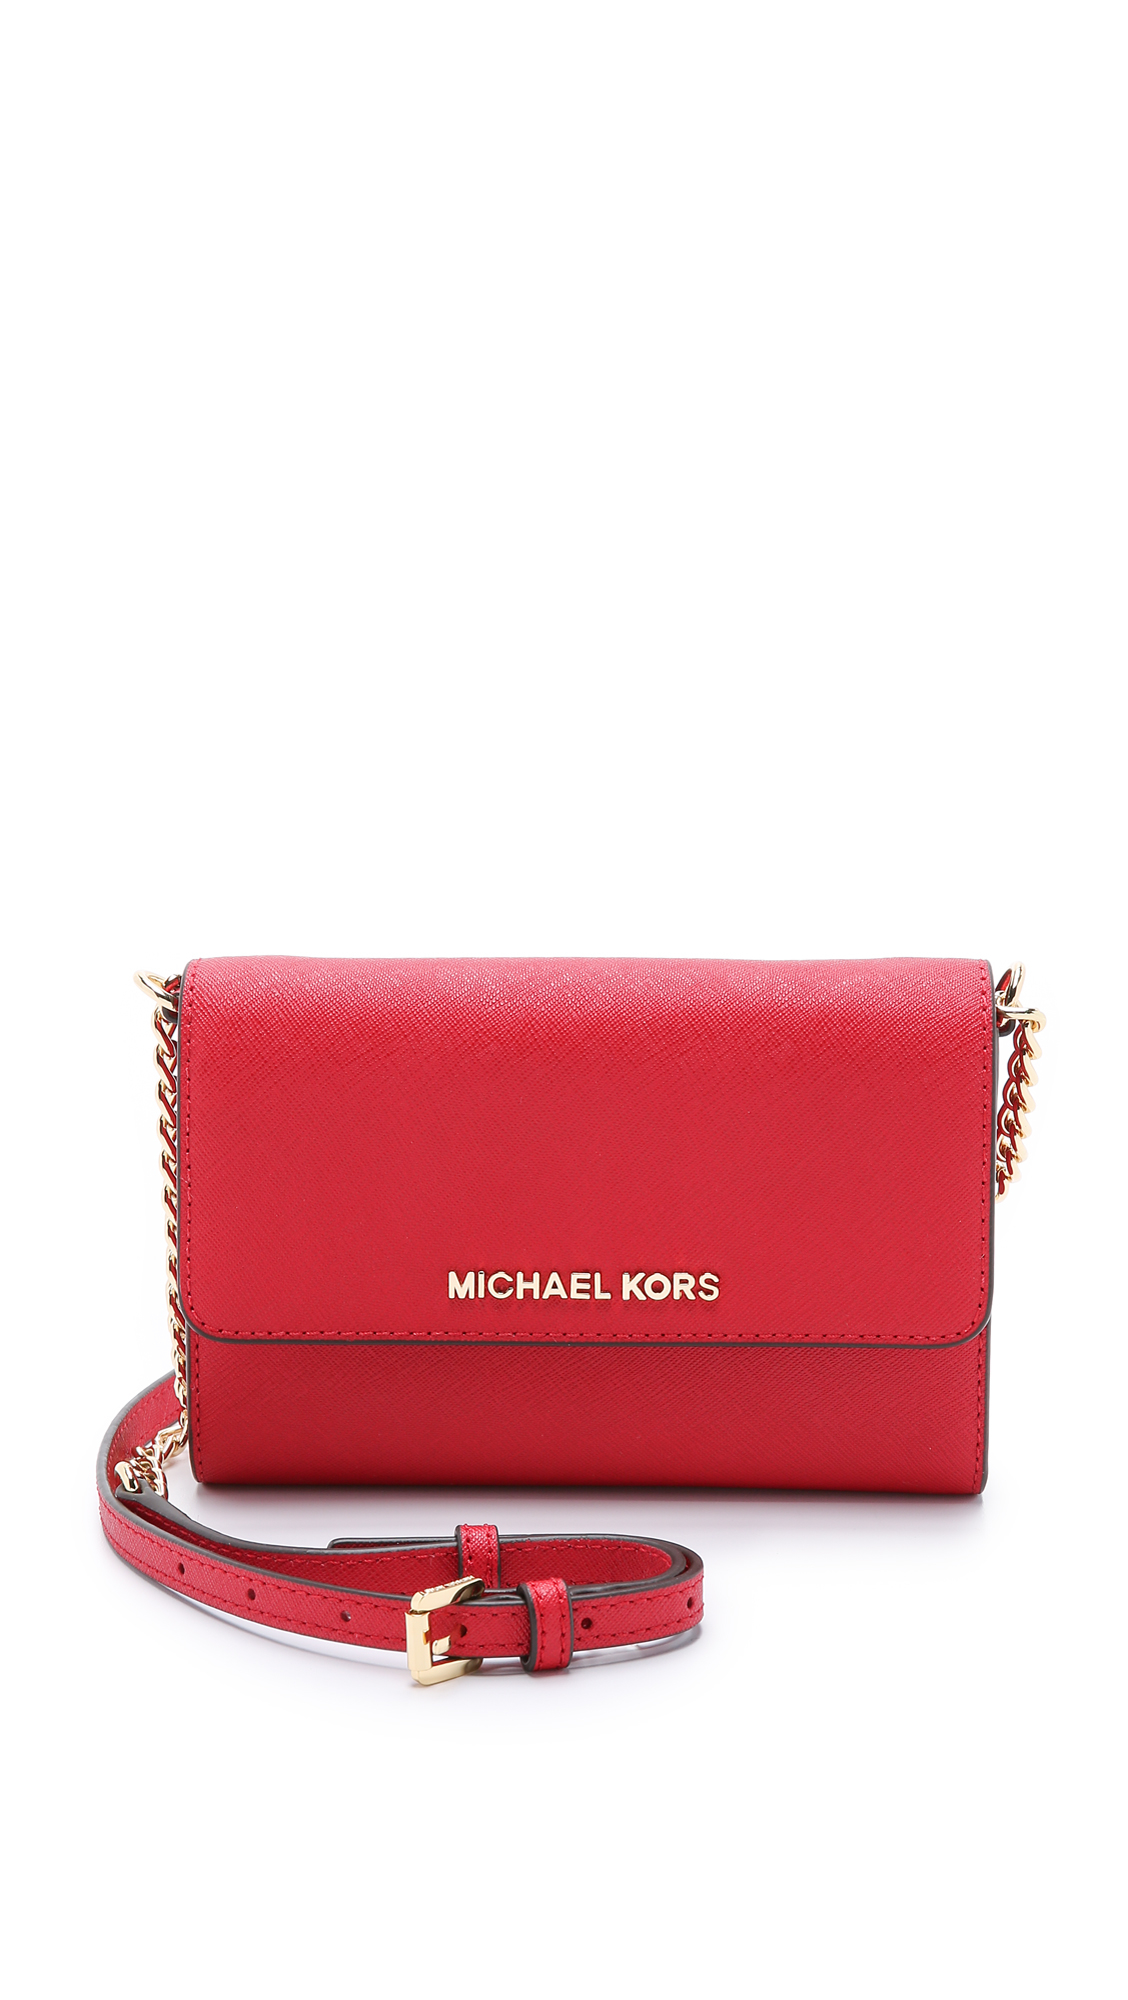 27500b5ceddc ... cheap lyst michael michael kors jet set cross body bag chili in red  6b3a3 e0bd3